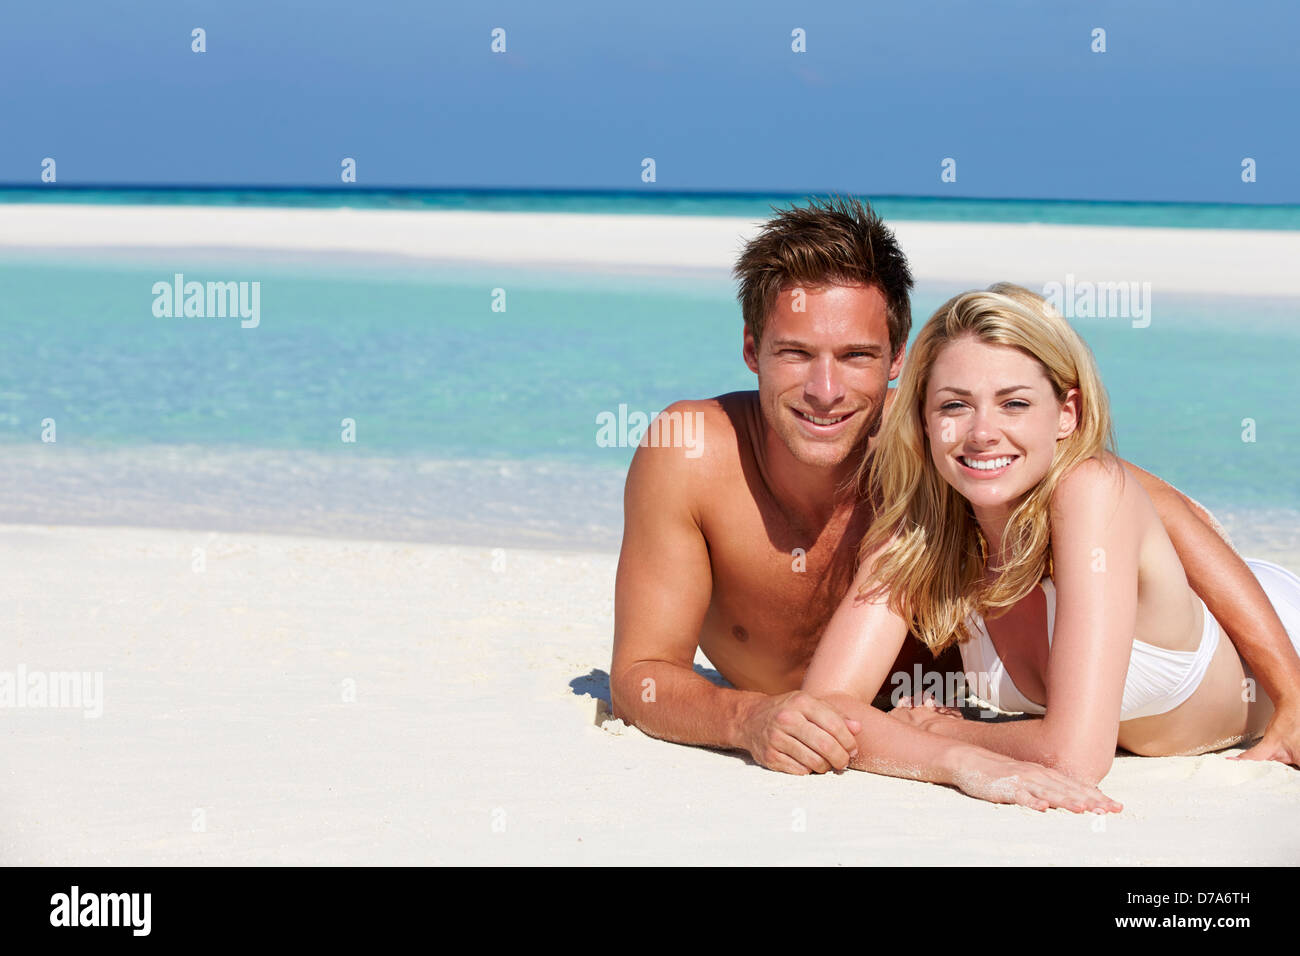 Couple Enjoying Beach Holiday - Stock Image